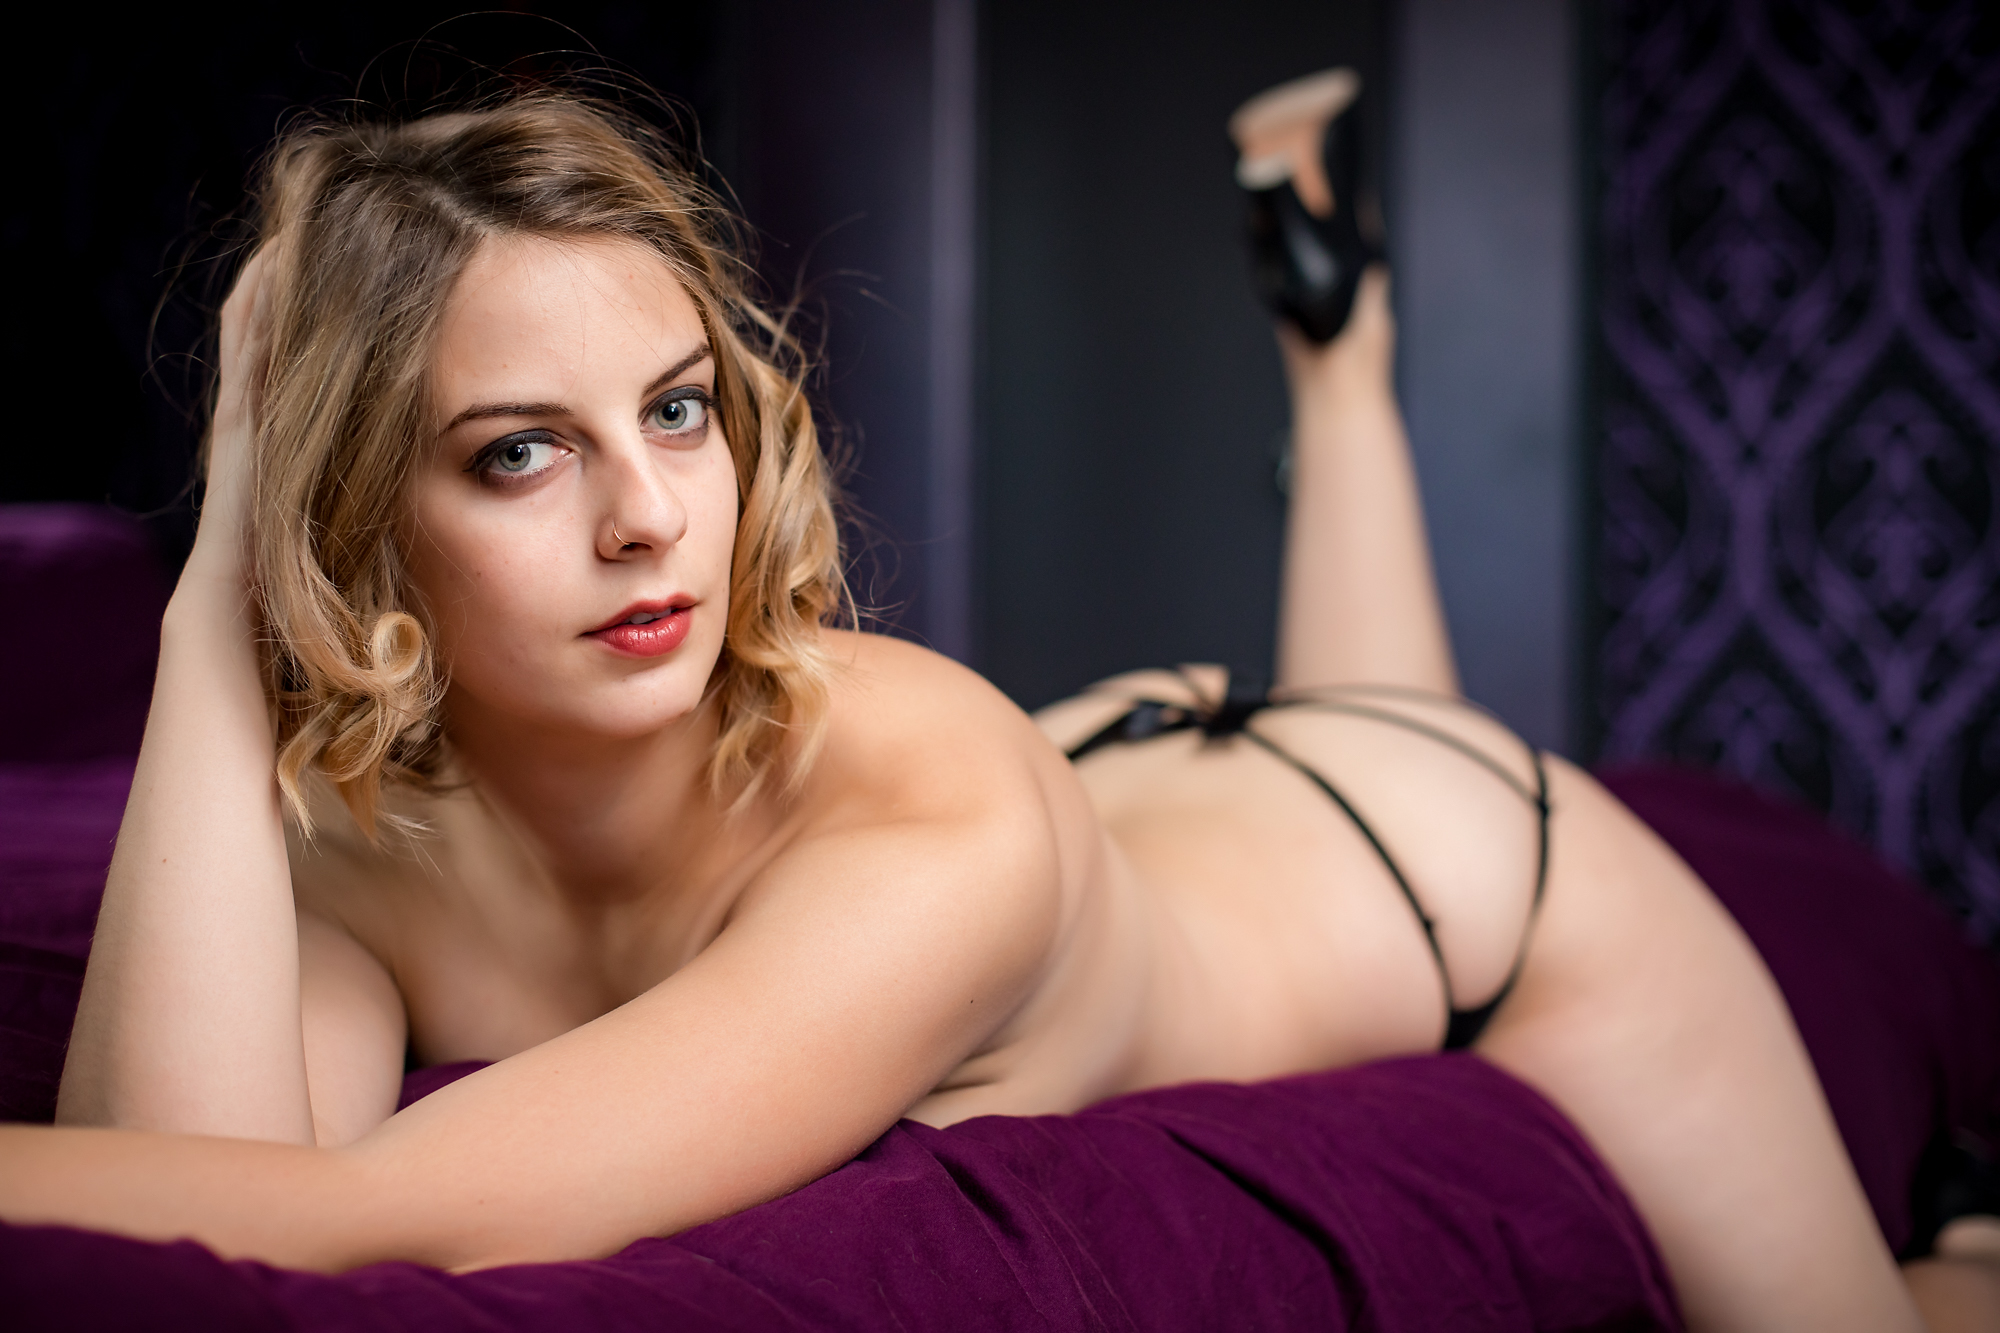 Check out Julia's full set by backing at  http://patreon.com/hellapositive !